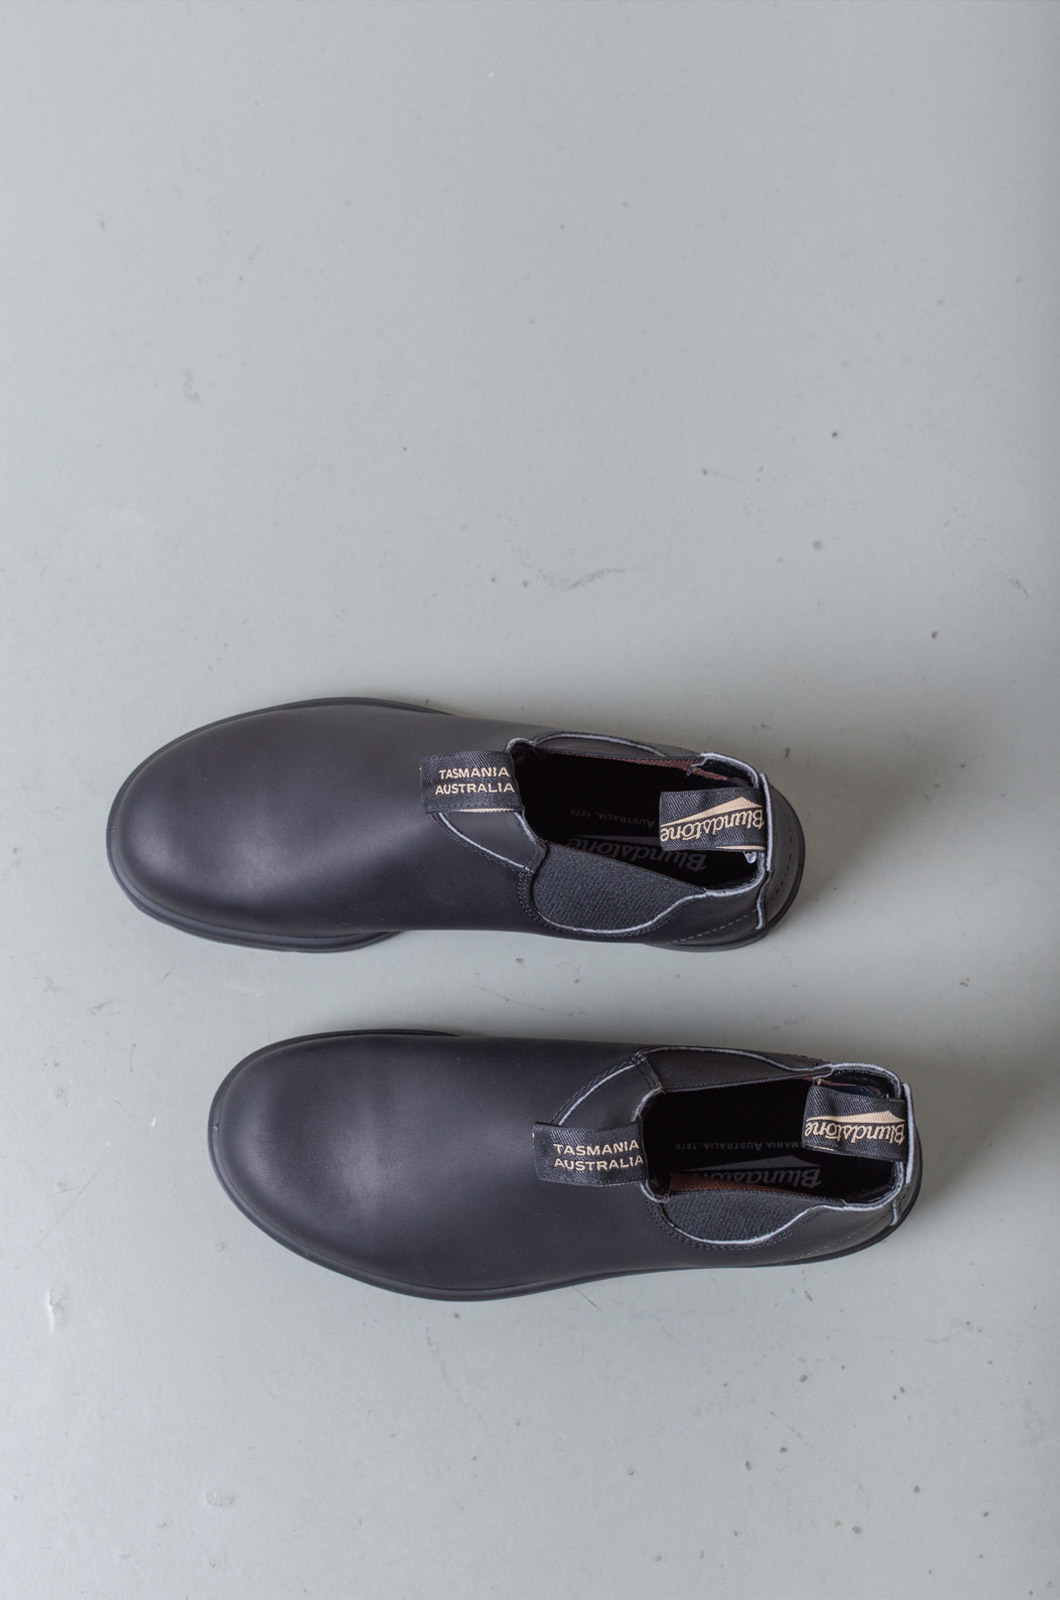 Blundstone - Classic Chelsea Boots - Black Leather